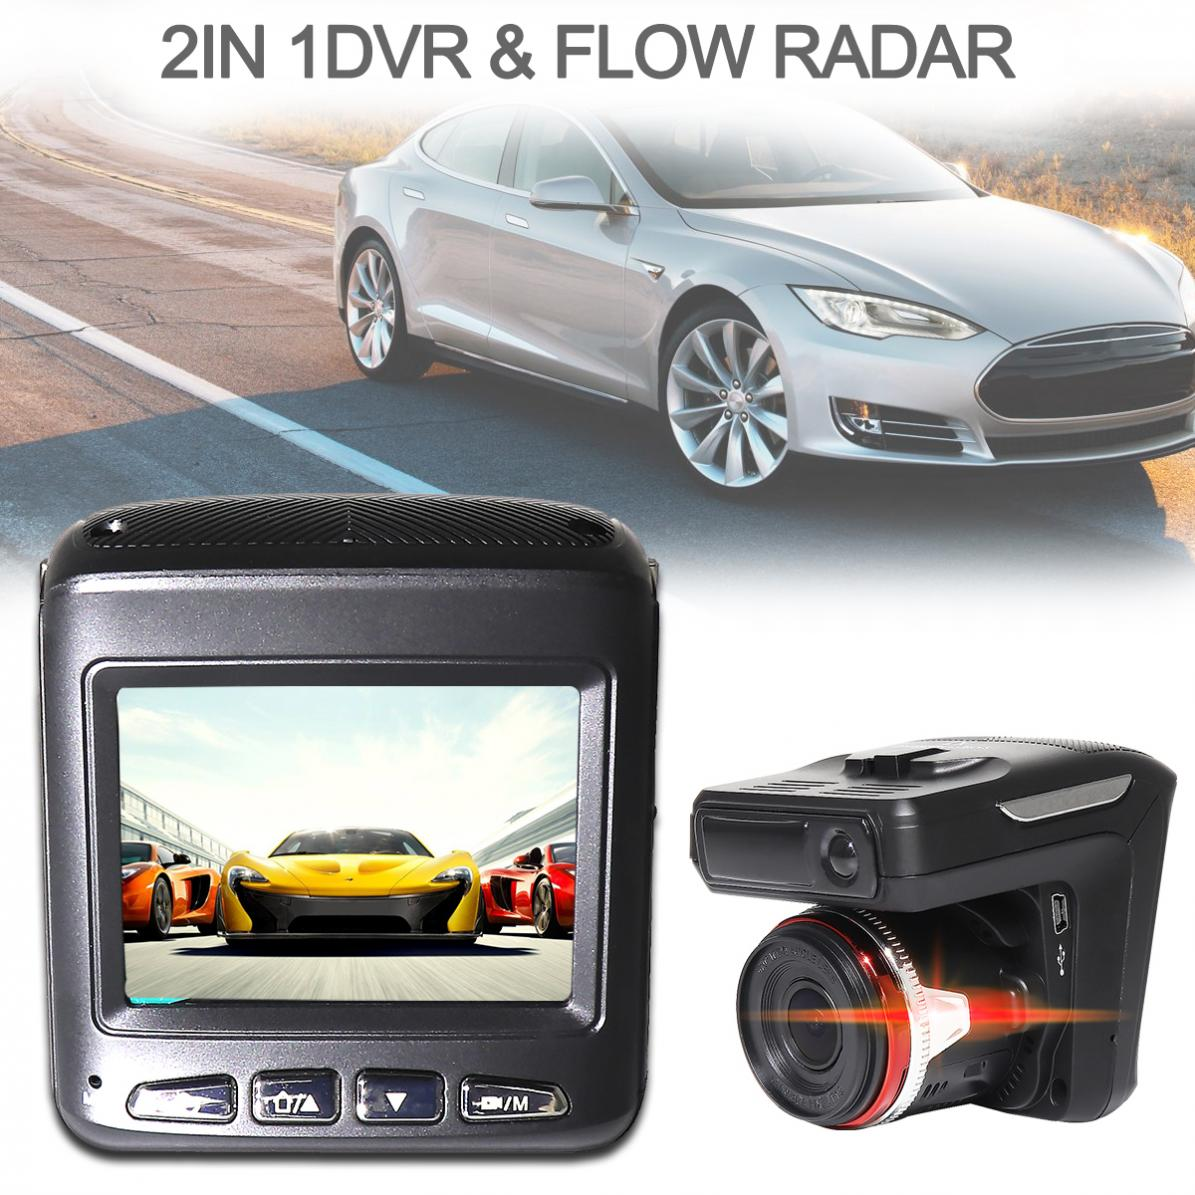 2 In 1 Car DVR Radar Detector G-senor Car-detector Camera HD 1280P <font><b>speed</b></font> camera detector Antiradar Russian/English Language image